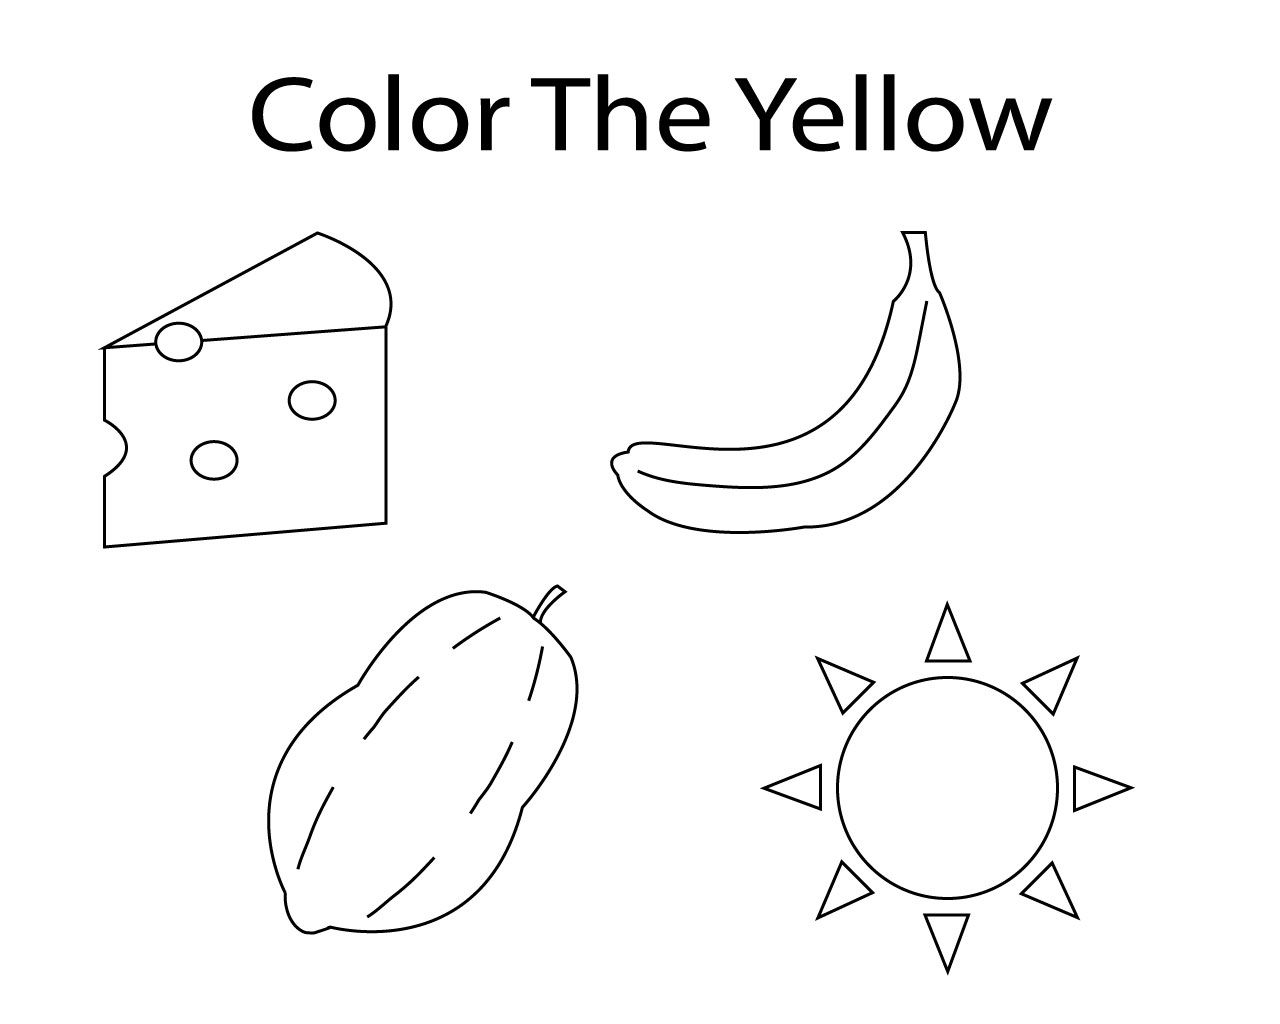 Yellow Coloring Pages For Toddler Coloring Pages For Toddlers Printables Kindergarten Coloring Pages Coloring Pages